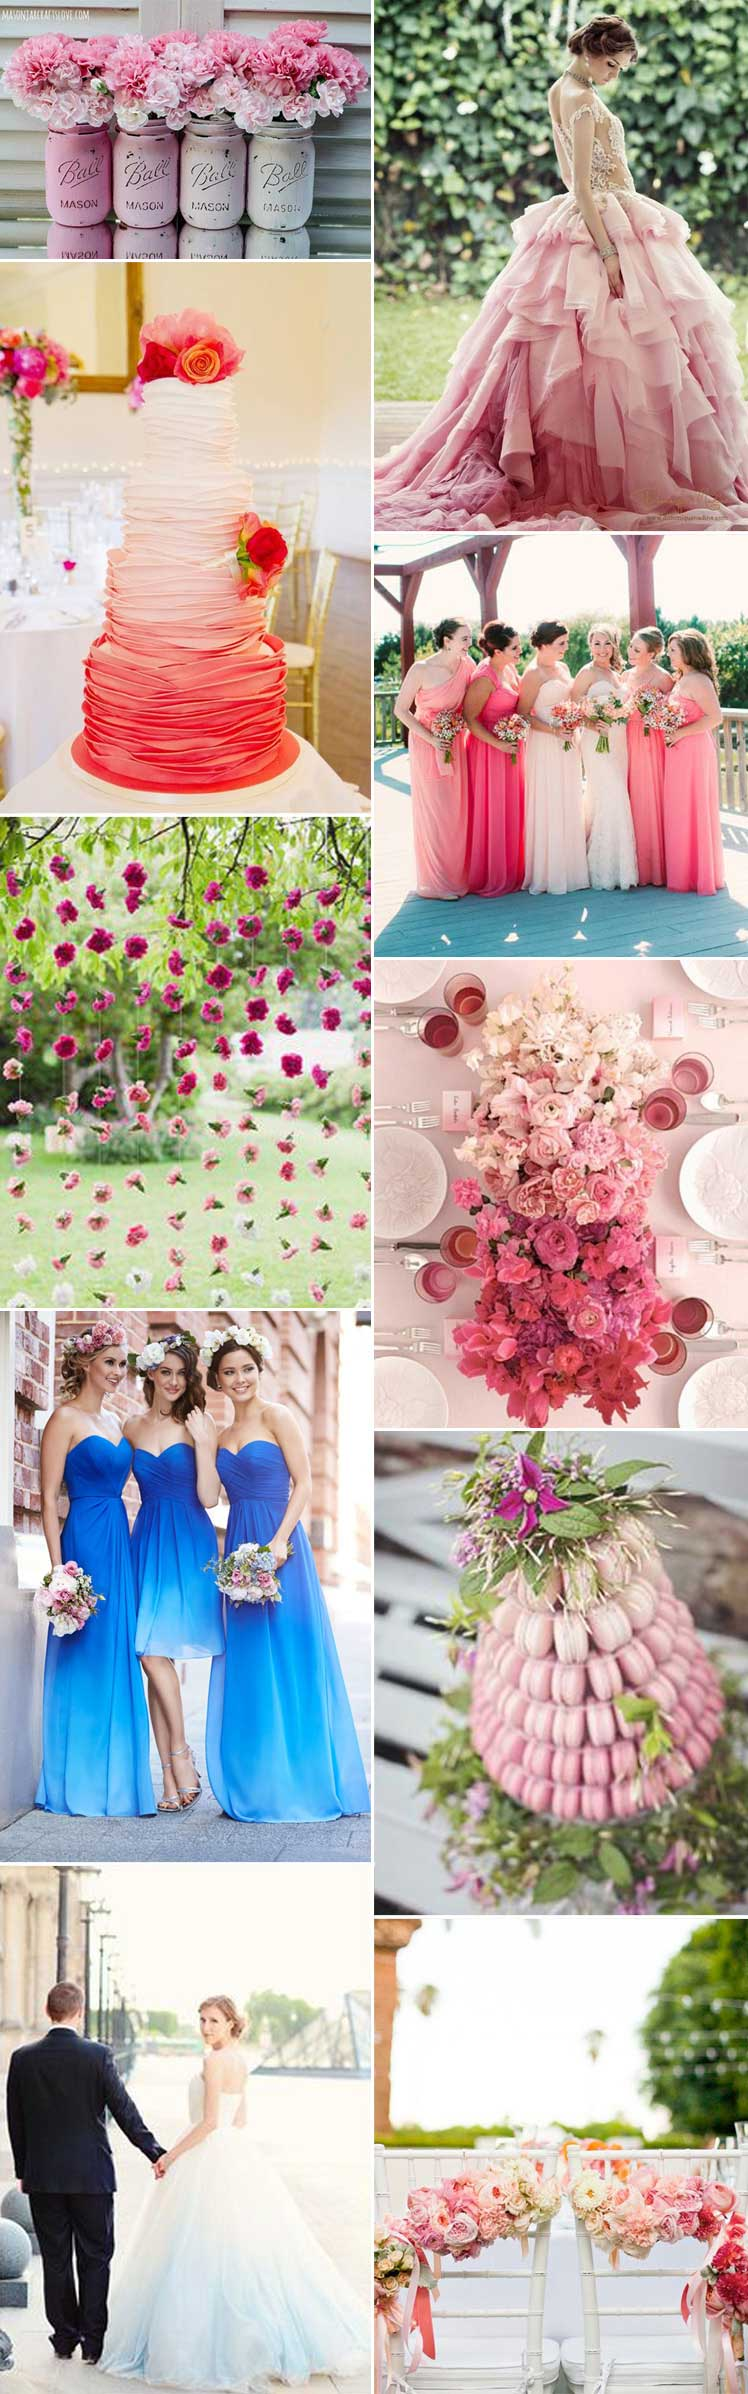 a wonderful ombre wedding theme